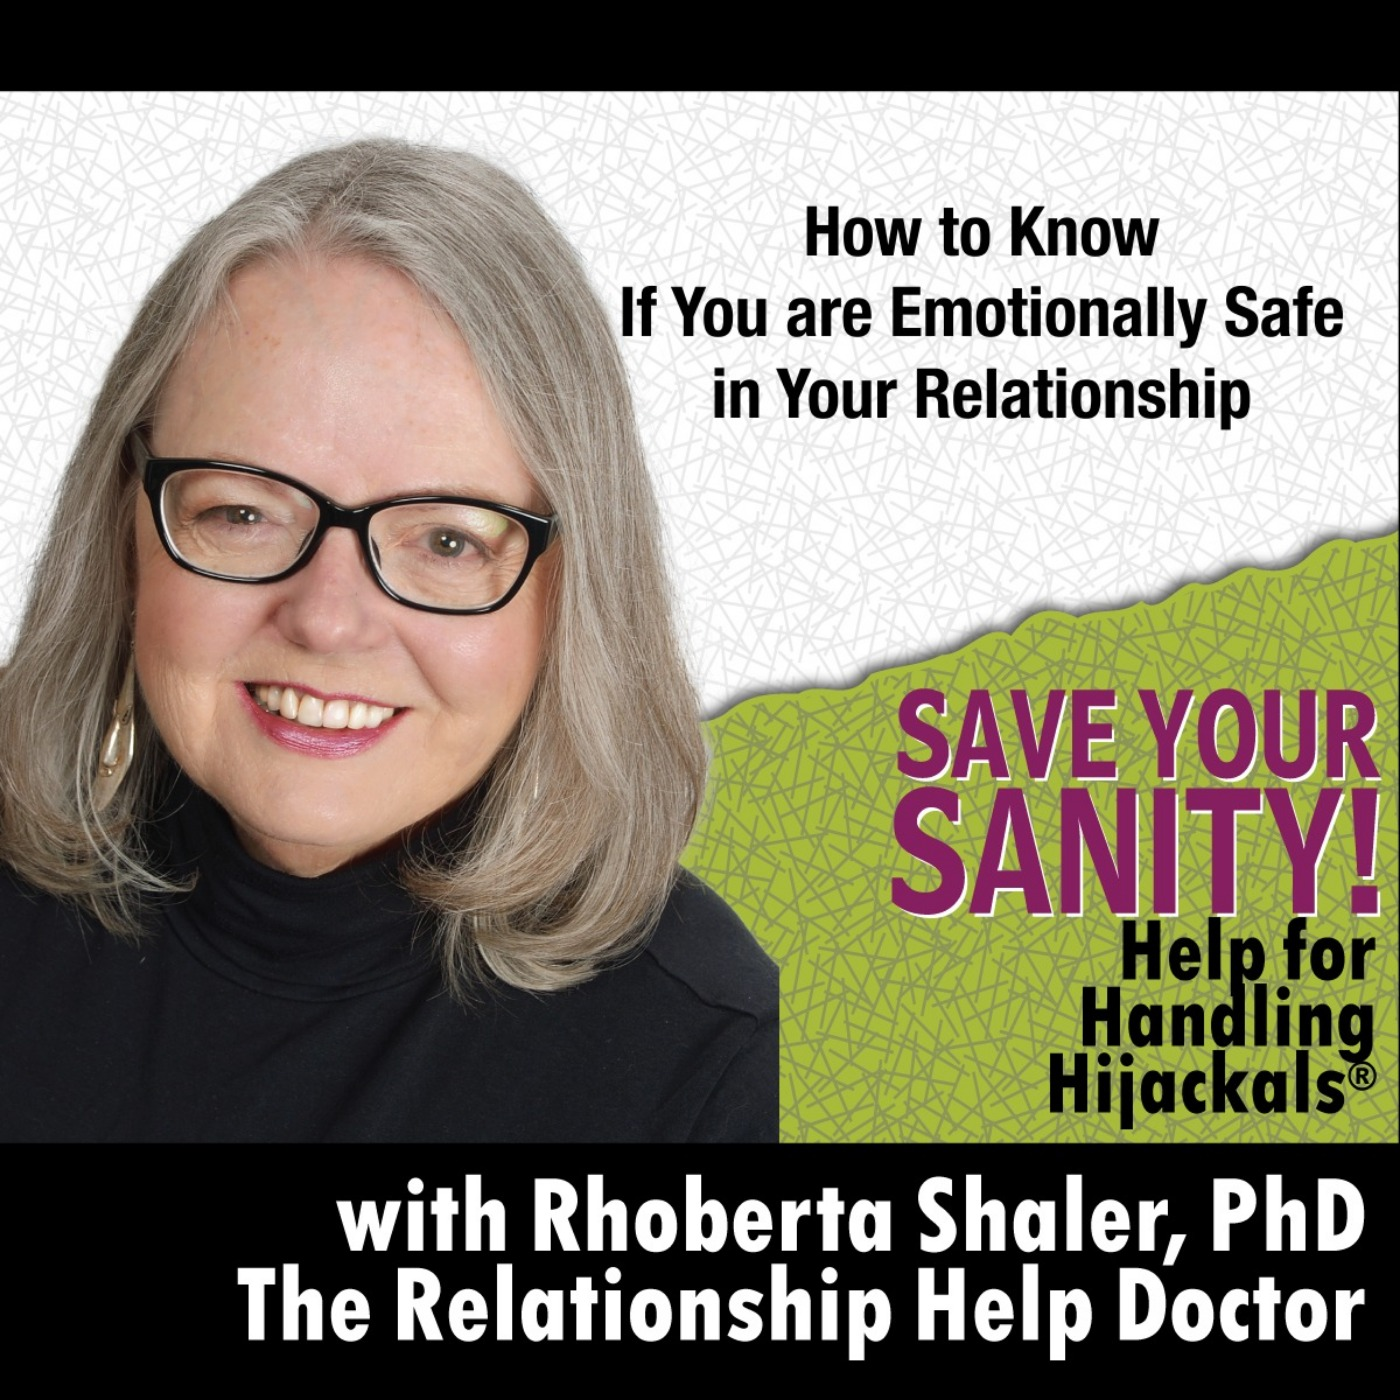 How to Know If You're Emotionally Safe in Your Relationship